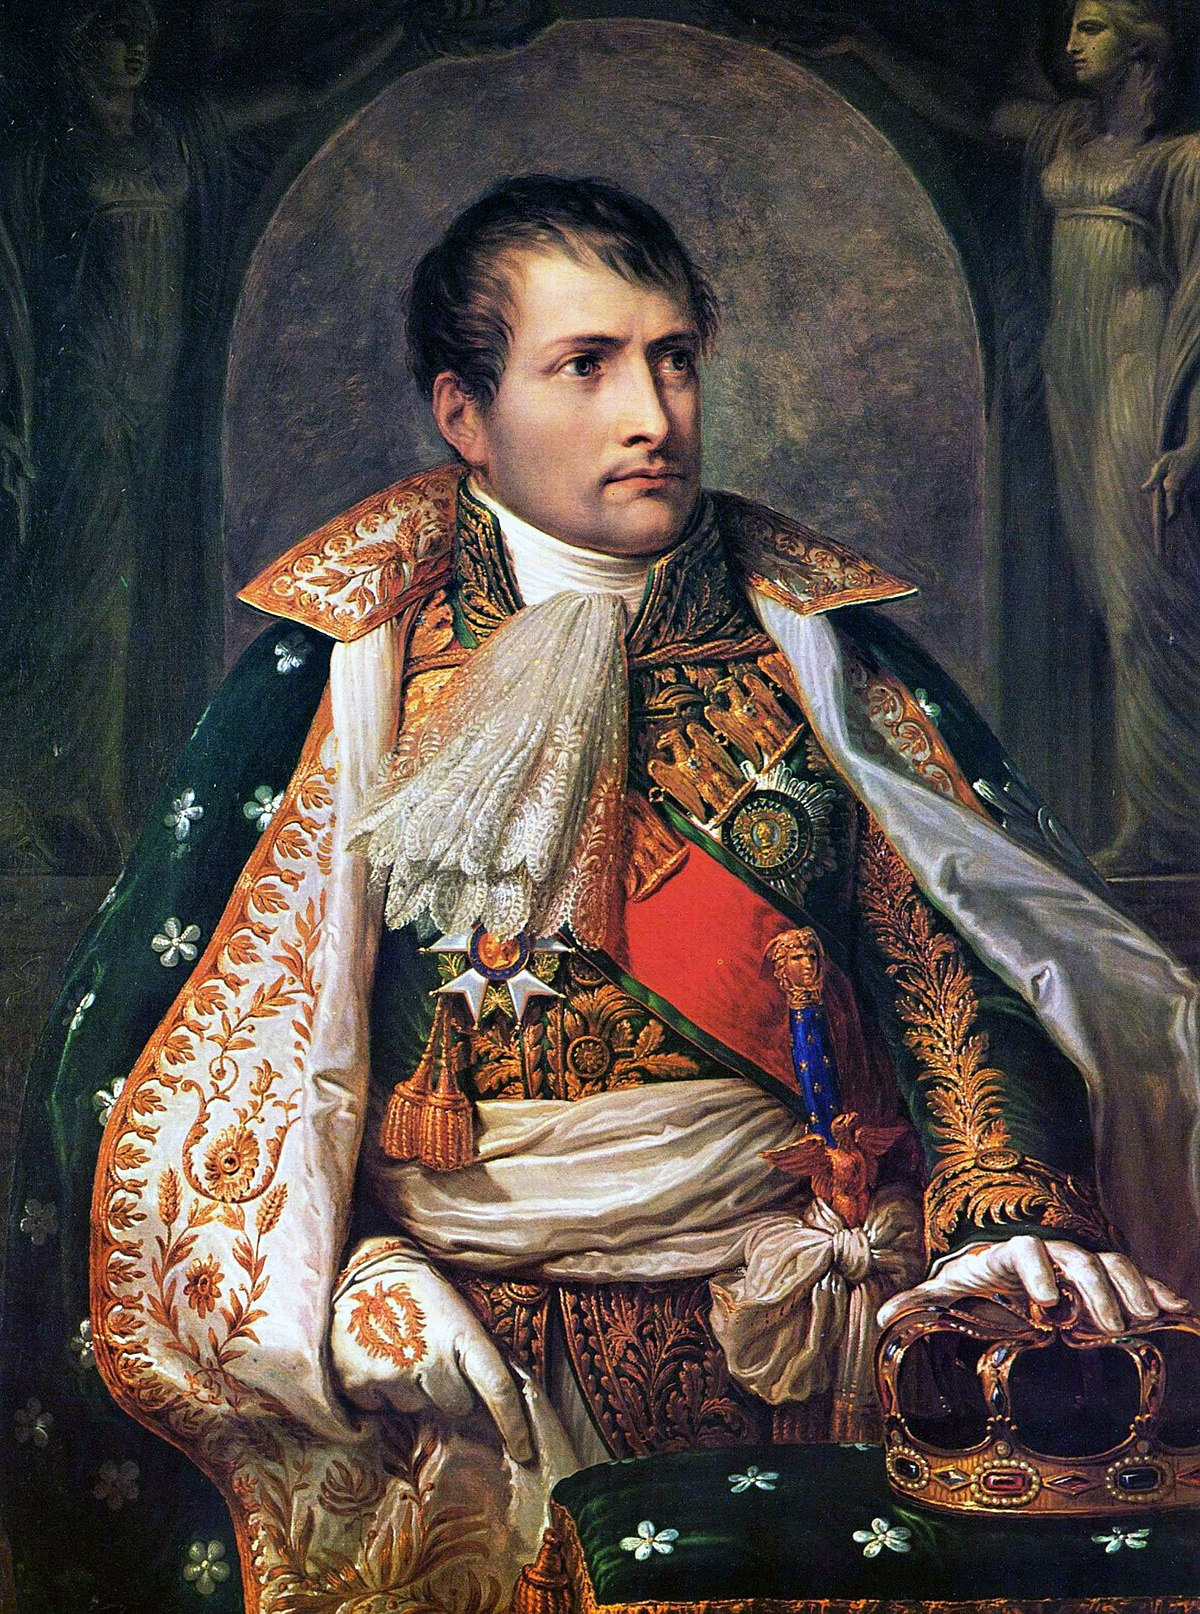 napoleon i of france and ambition Napoleon i on his imperial throne ( french : napoléon ier sur le trône impérial ) is an 1806 portrait of napoleon i of france in his coronation costume, painted by the french painter ingres  description engraving of robert lefèvre 's portrait of napoleon in his coronation costume, engraving in the treatise by the pausanias français.